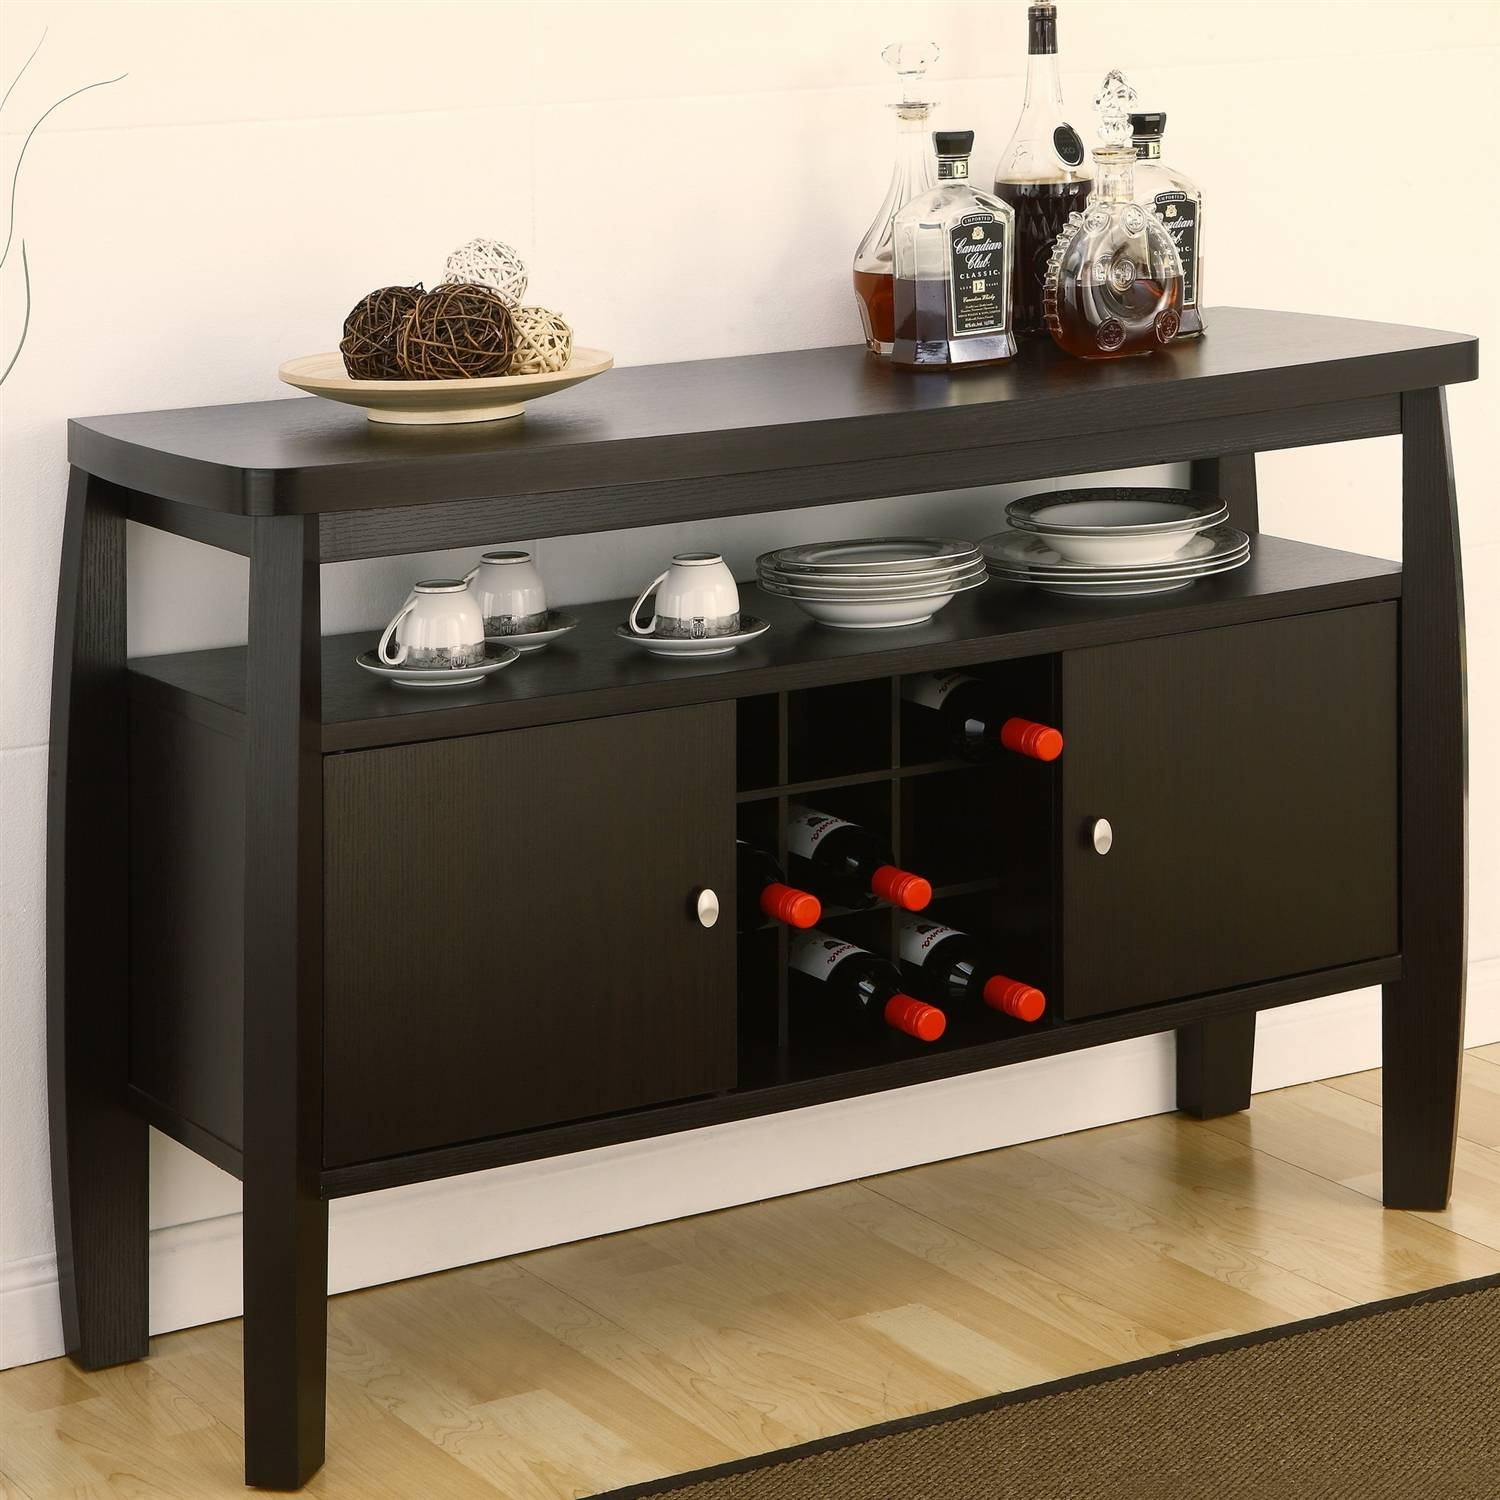 Best Of Buffet Sideboard Server - Bjdgjy inside Buffet Servers and Sideboards (Image 1 of 15)